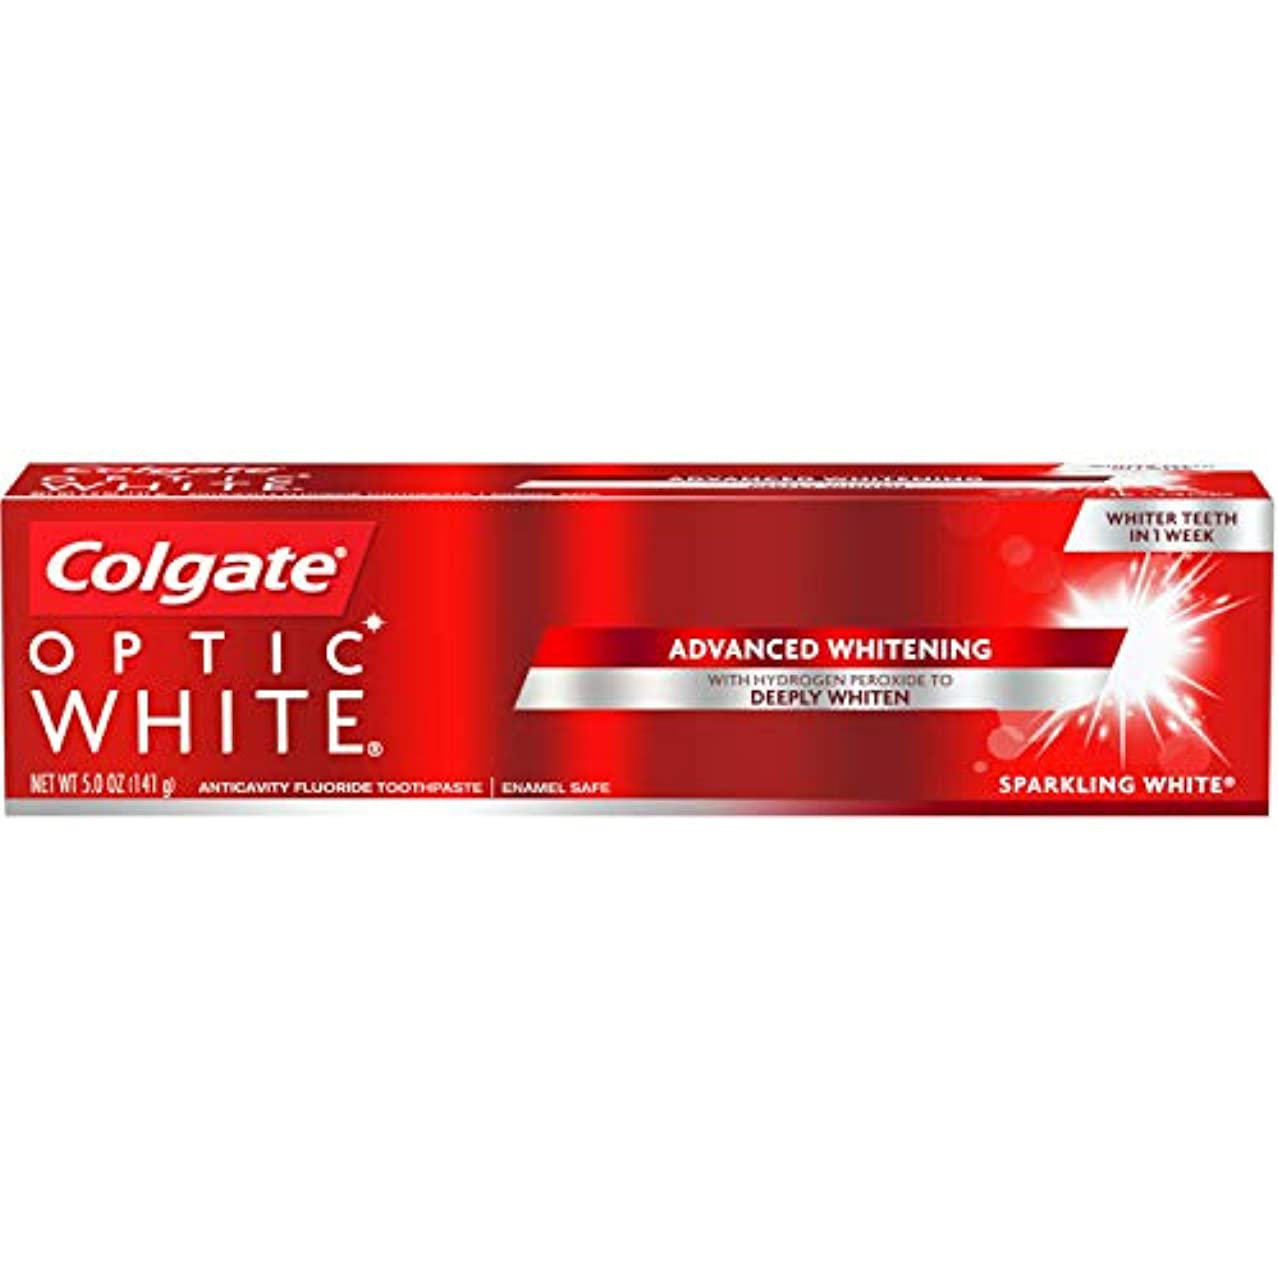 Colgate Optic White Sparkling Mint Toothpaste, 5 oz by COLGATE-PALMOLIVE